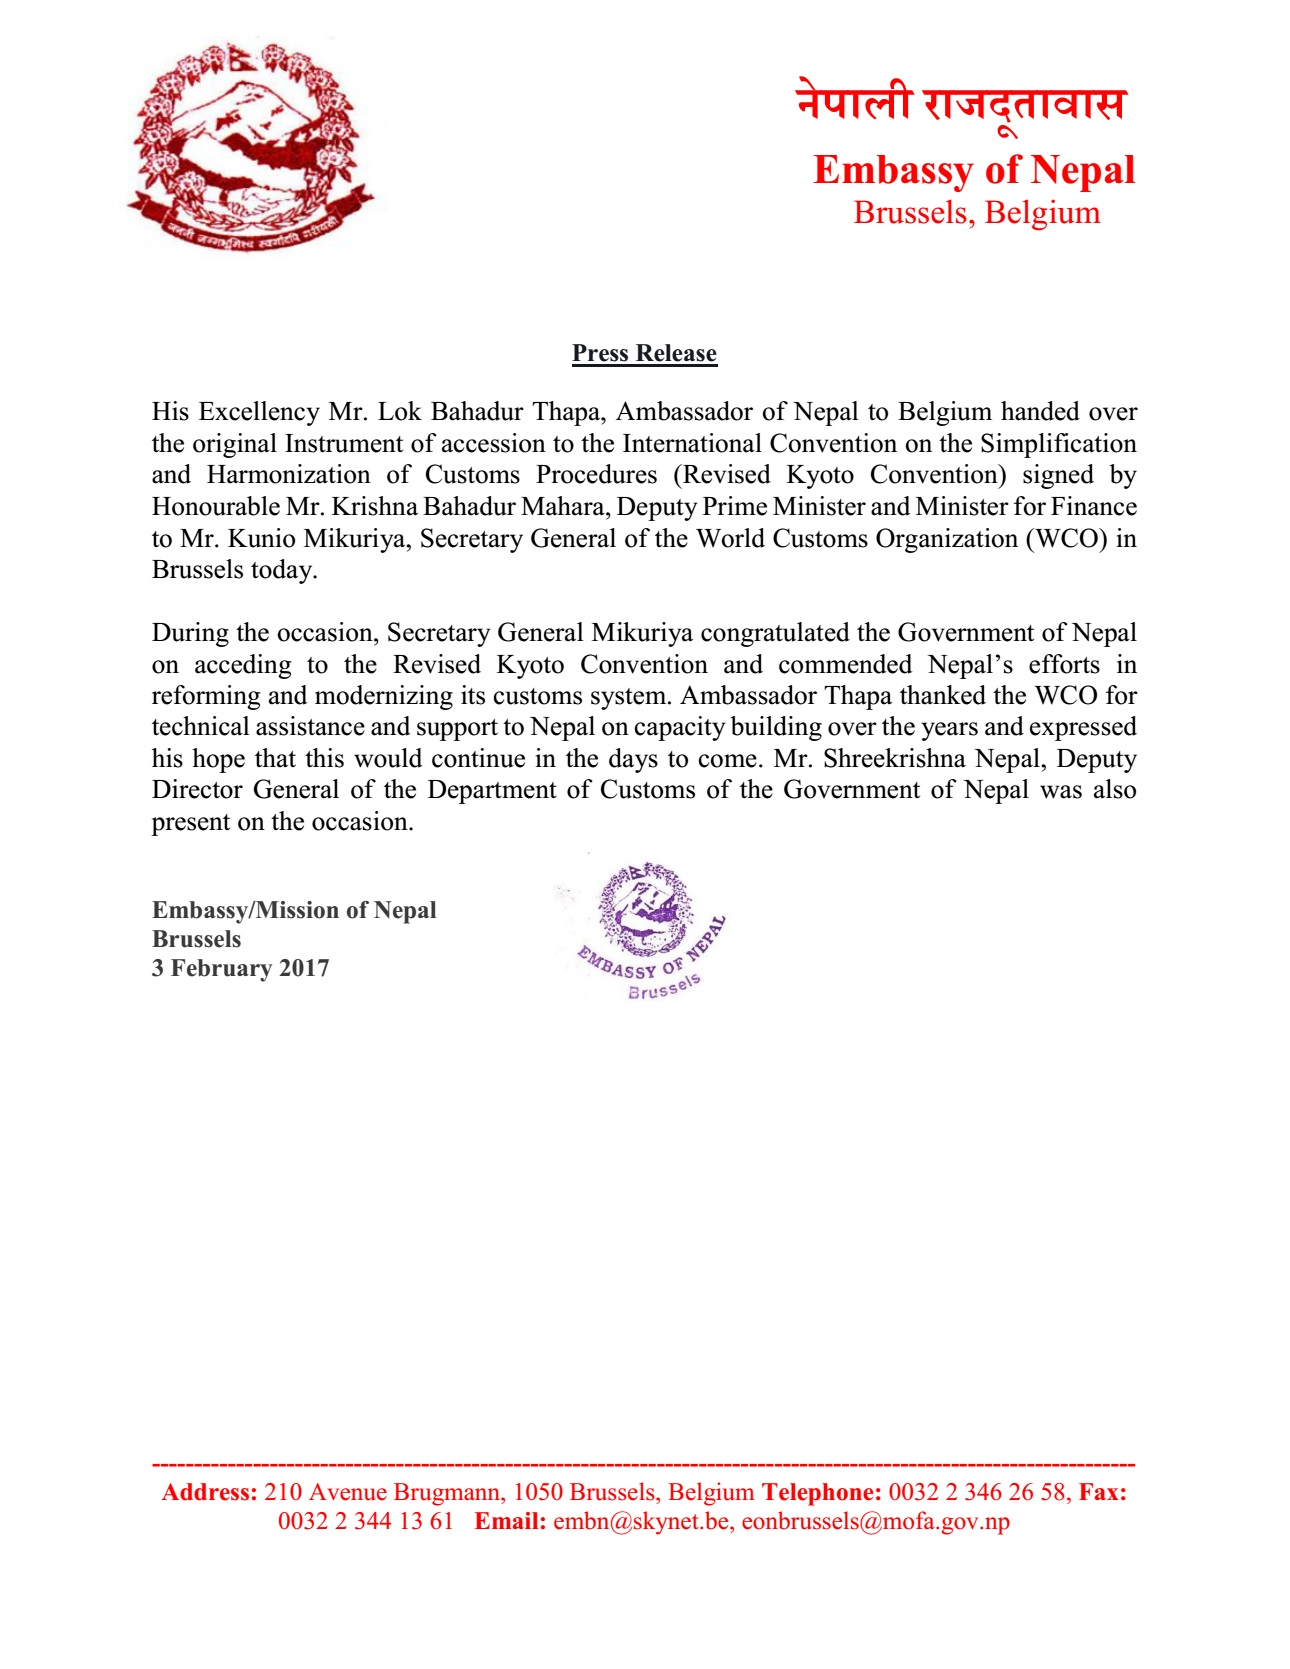 Press Release concerning the handing over of the original Instrument of Accession to the International Convention on the Simplification and Harmonization of Customs Procedures (Revised Kyoto Convention)